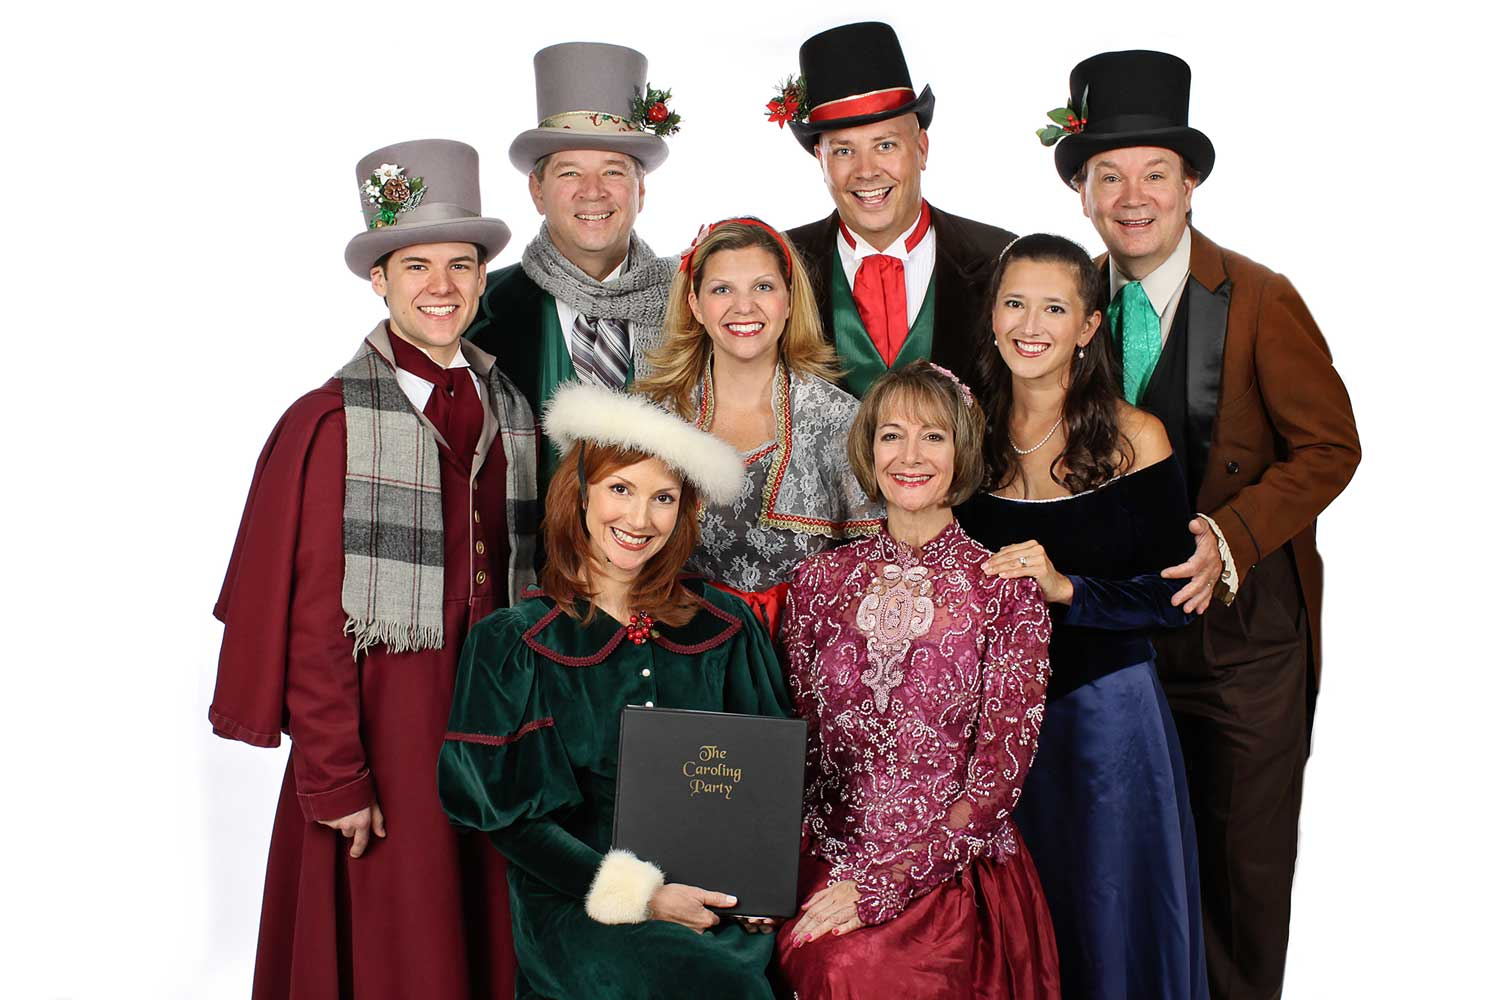 members of The Caroling Party